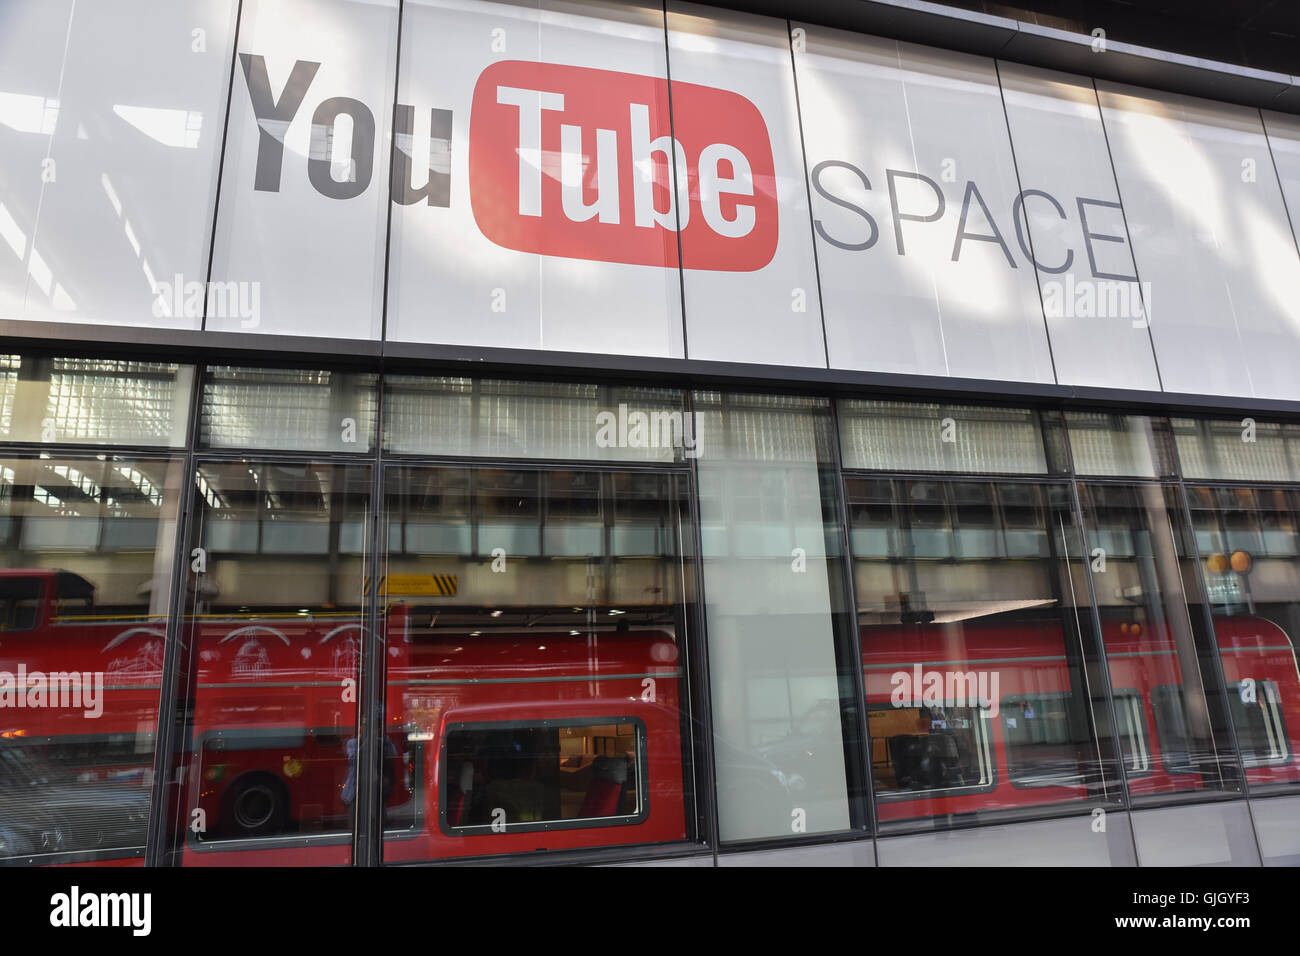 Youtube Offices kings cross, london, uk. 16th august 2016. new youtube space at